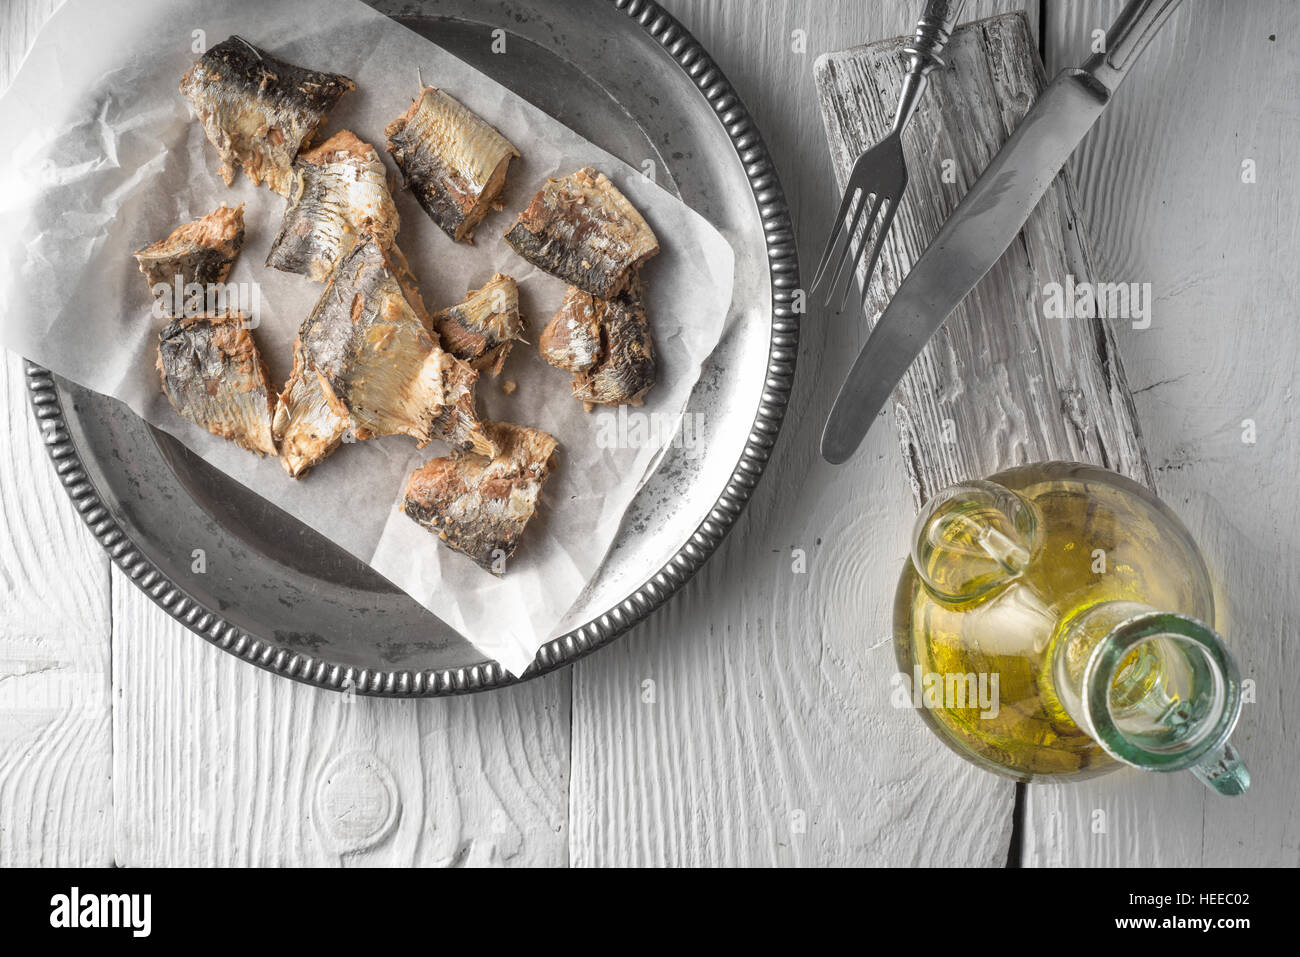 Plate with fish and olive oil on a wooden table horizontal - Stock Image